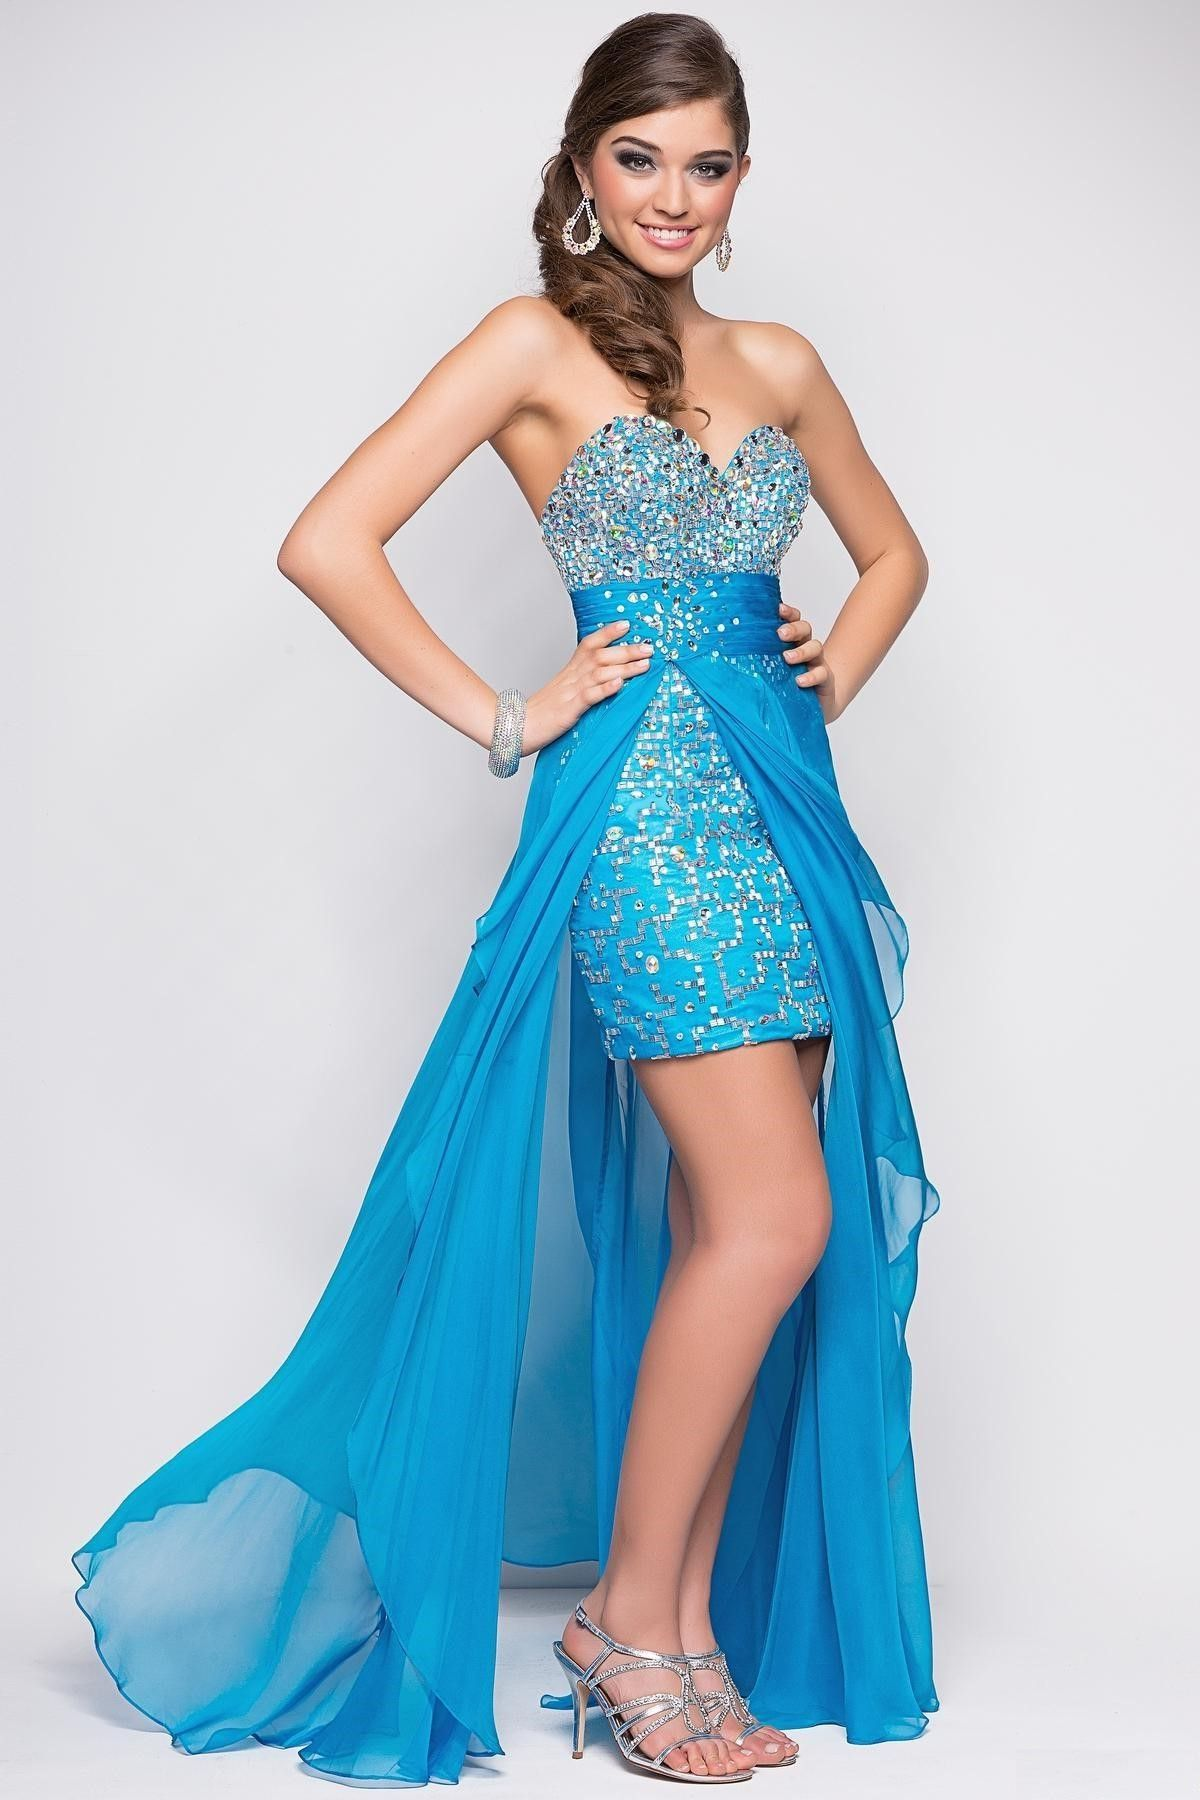 Primary 7 prom dresses zulily | My Fashion dresses | Pinterest